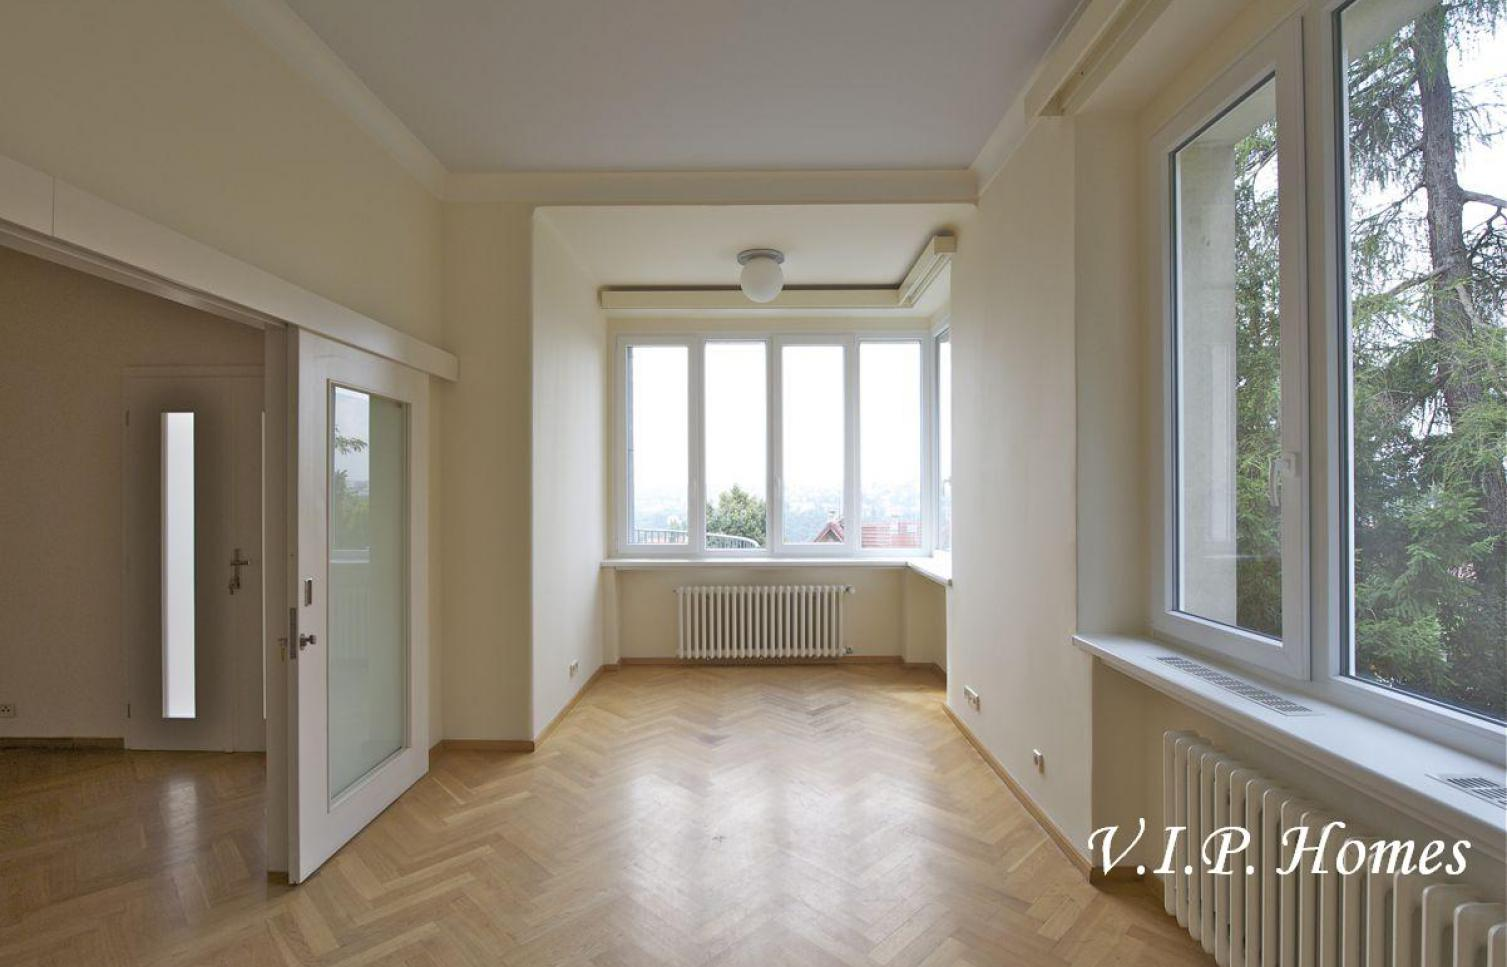 HOUSE FOR SALE, Str. Na Hřebenkách, Prague 5